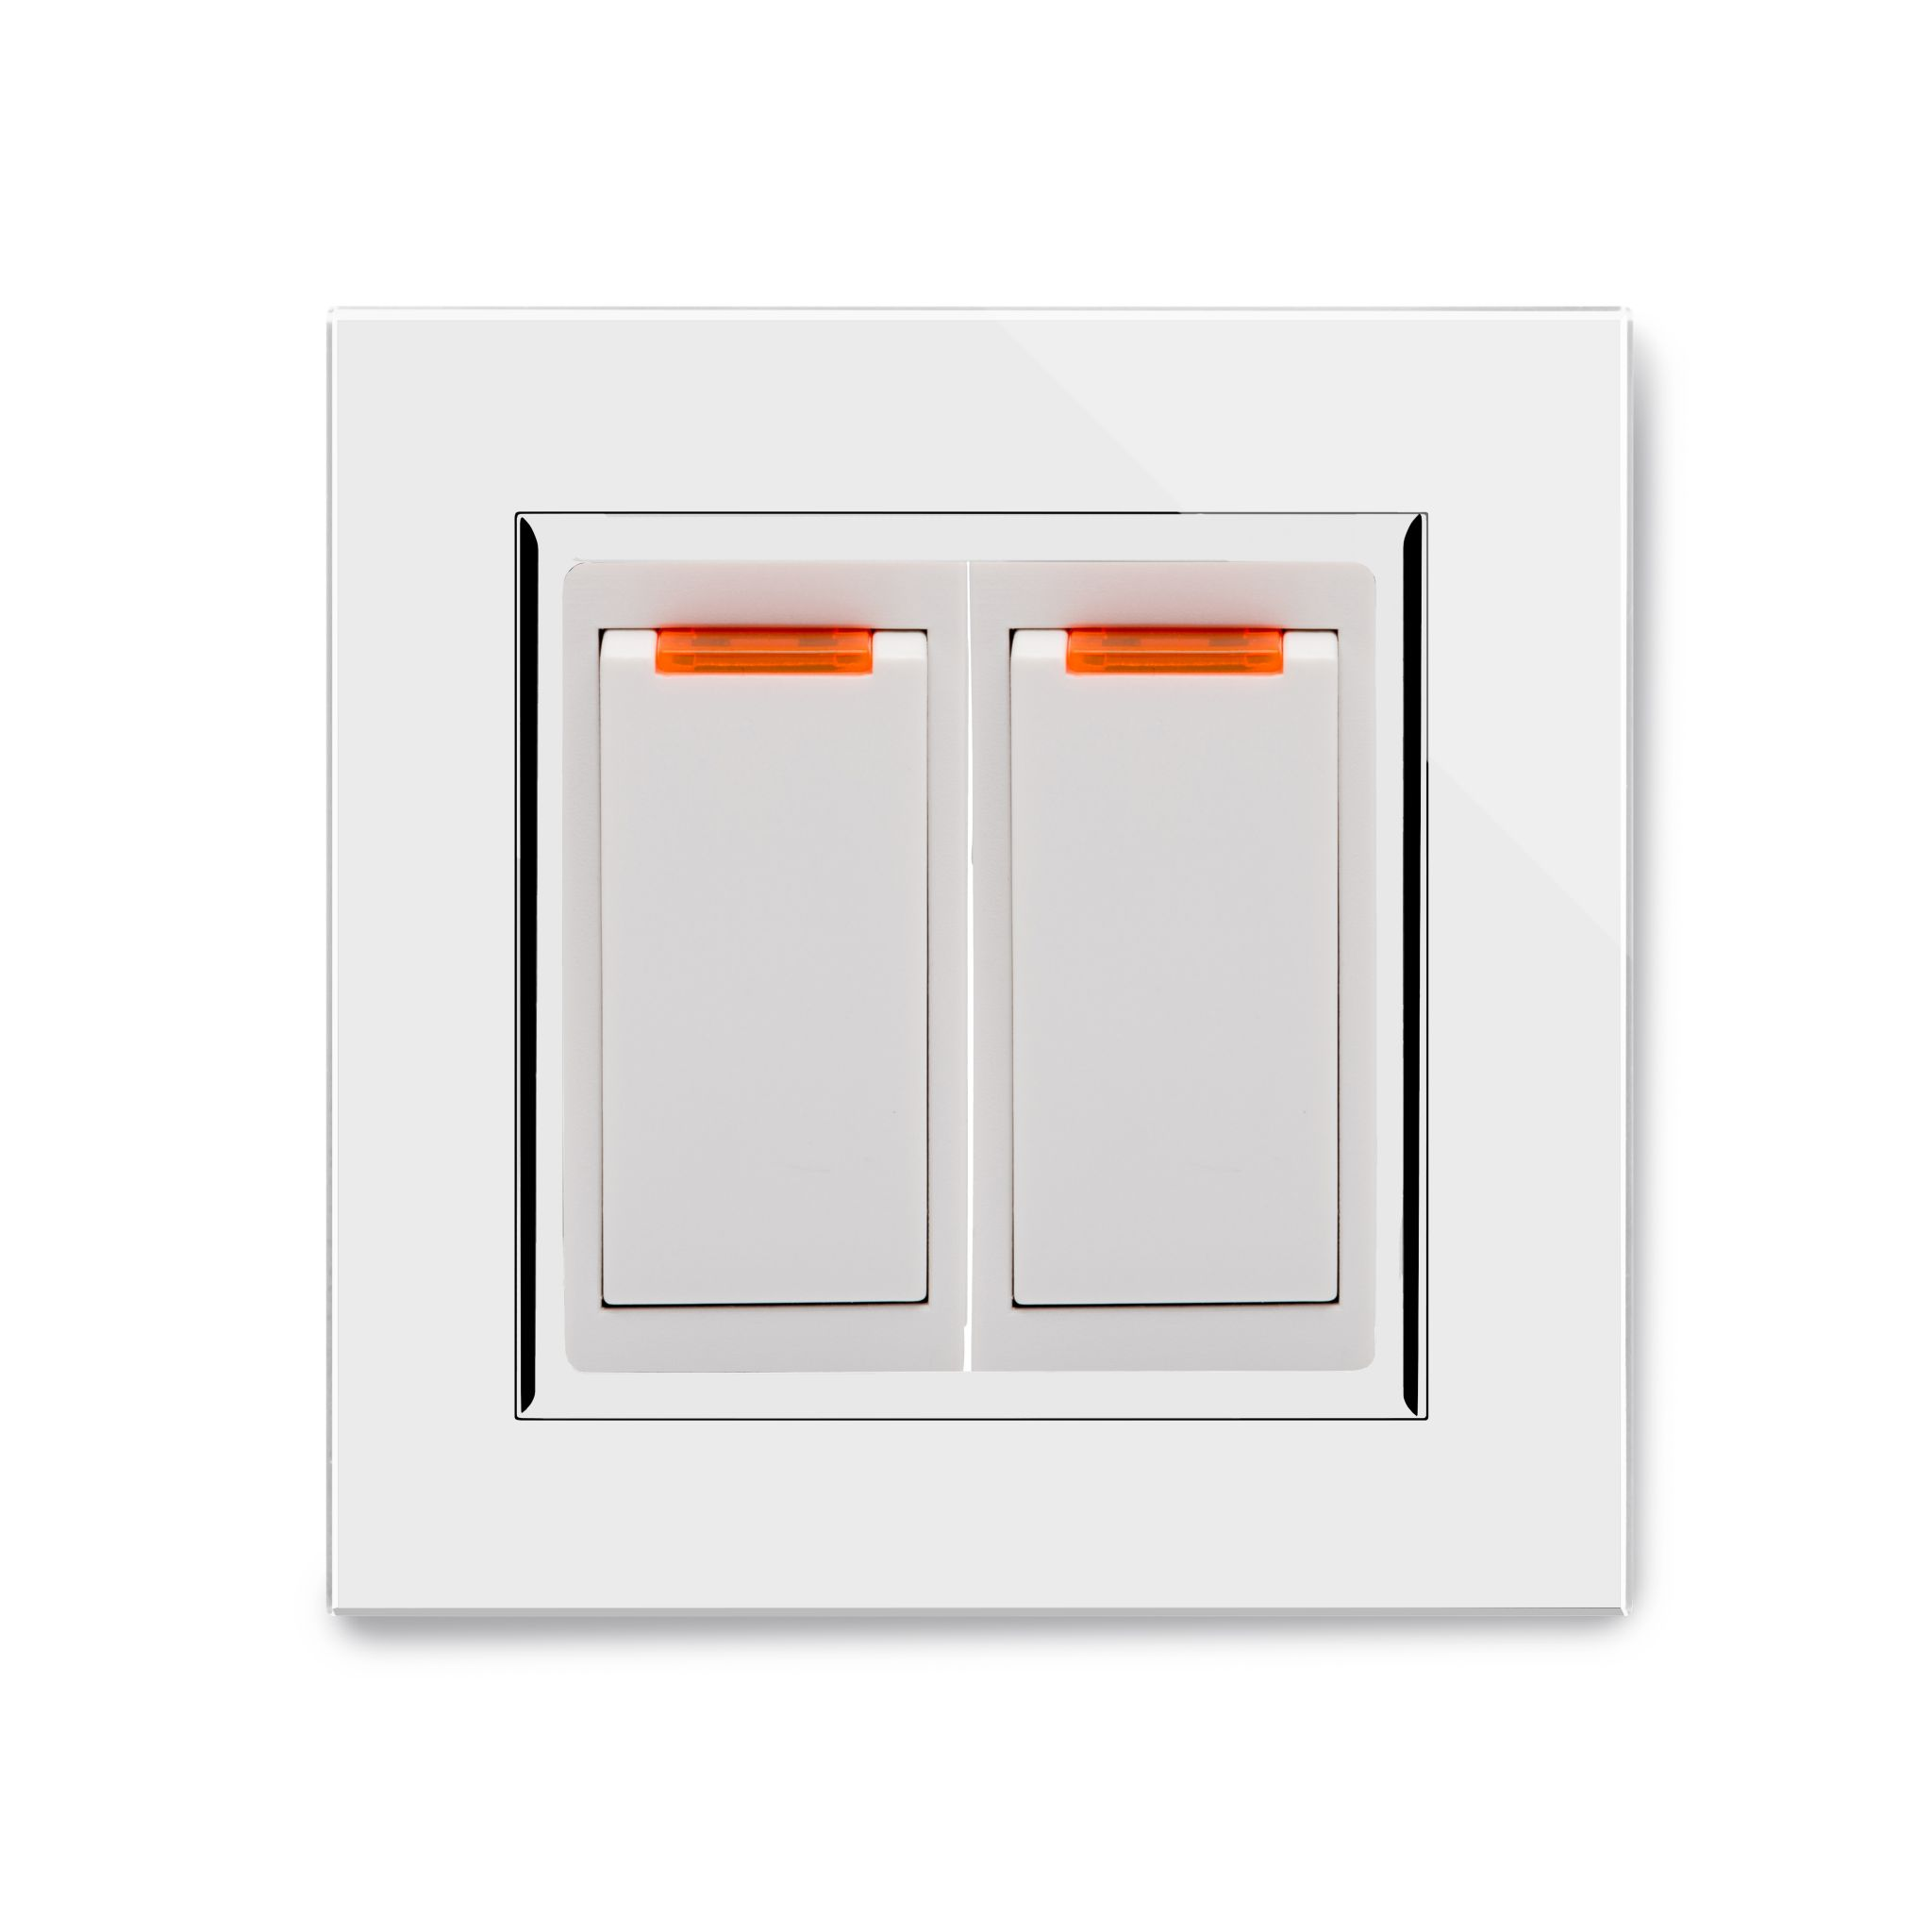 RetroTouch 20 Amp Double Pole Dual Switch with Neon White Glass CT 04201